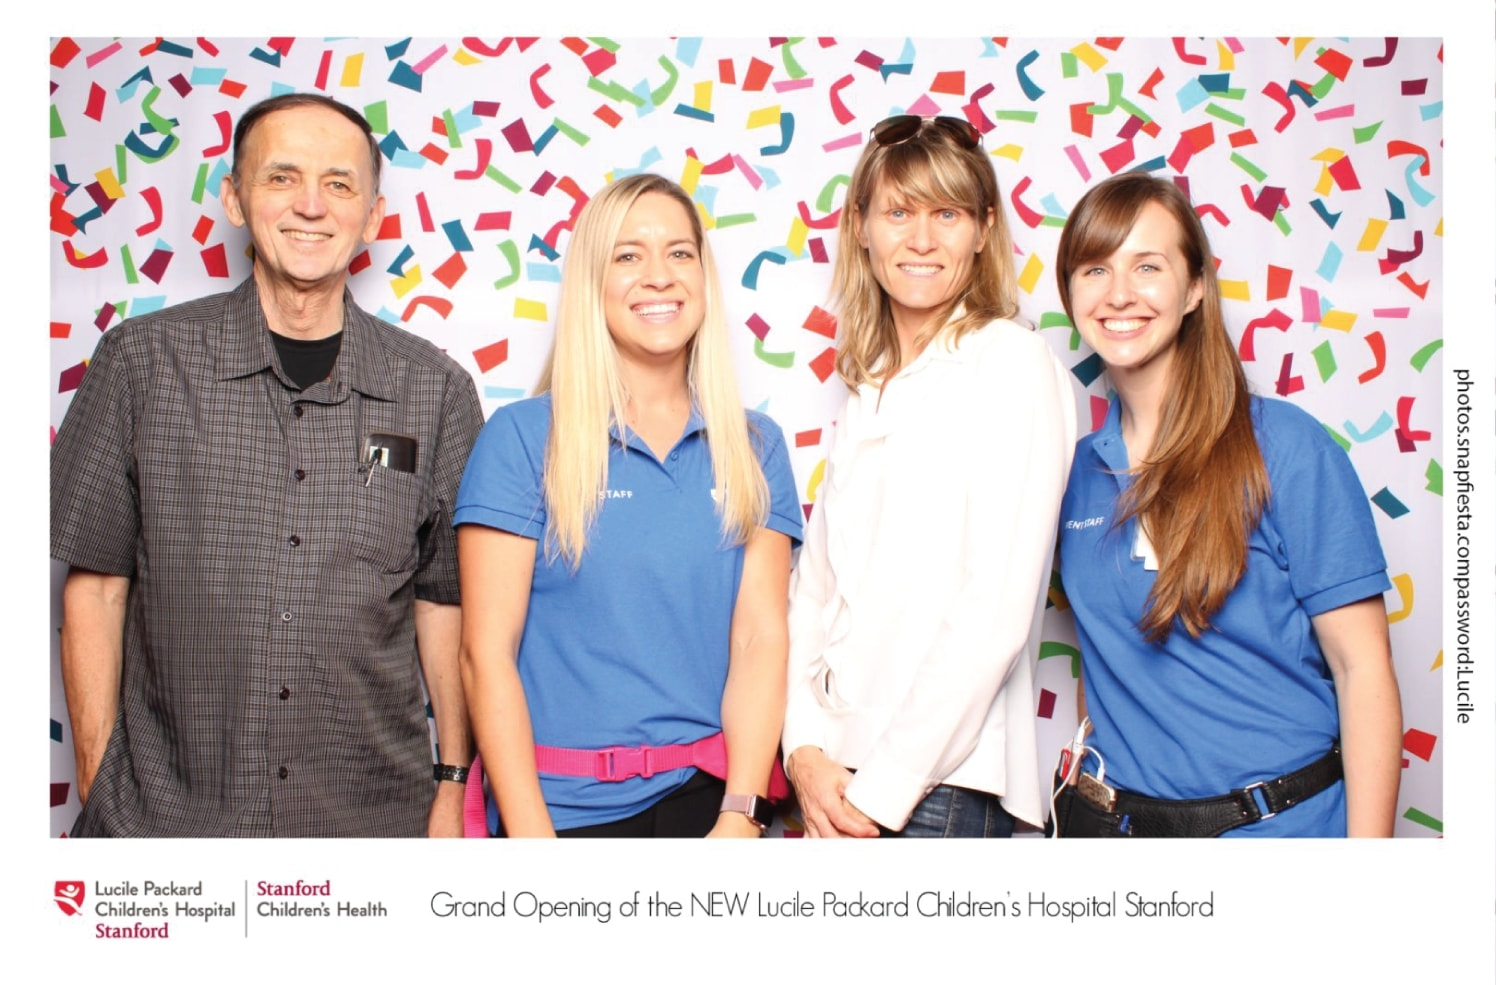 Lucile Packard Children S Hospital Stanford Grand Opening